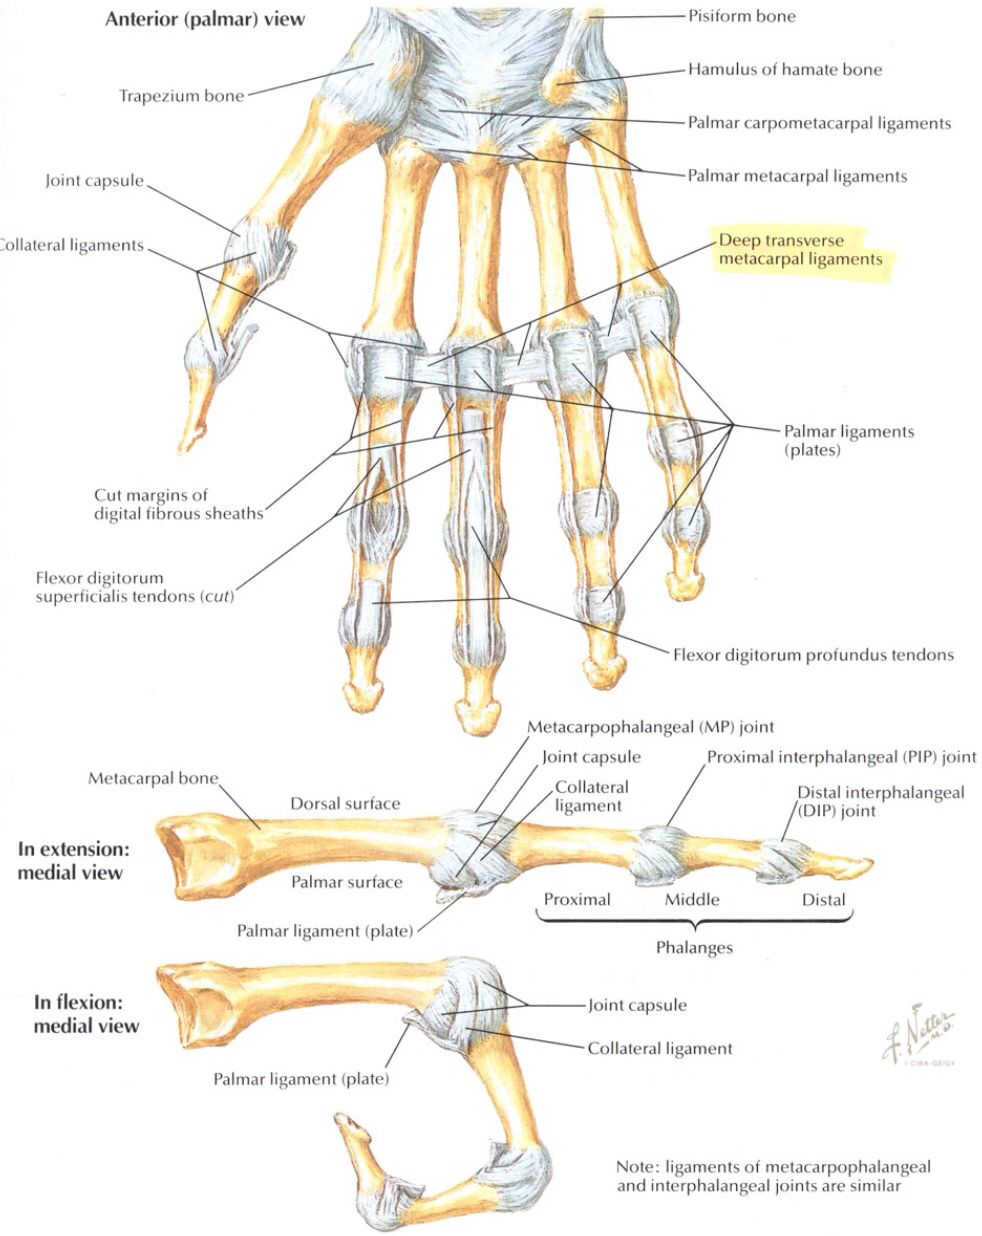 Bones And Ligaments Of The Fingers Anatomy Pinterest Anatomy